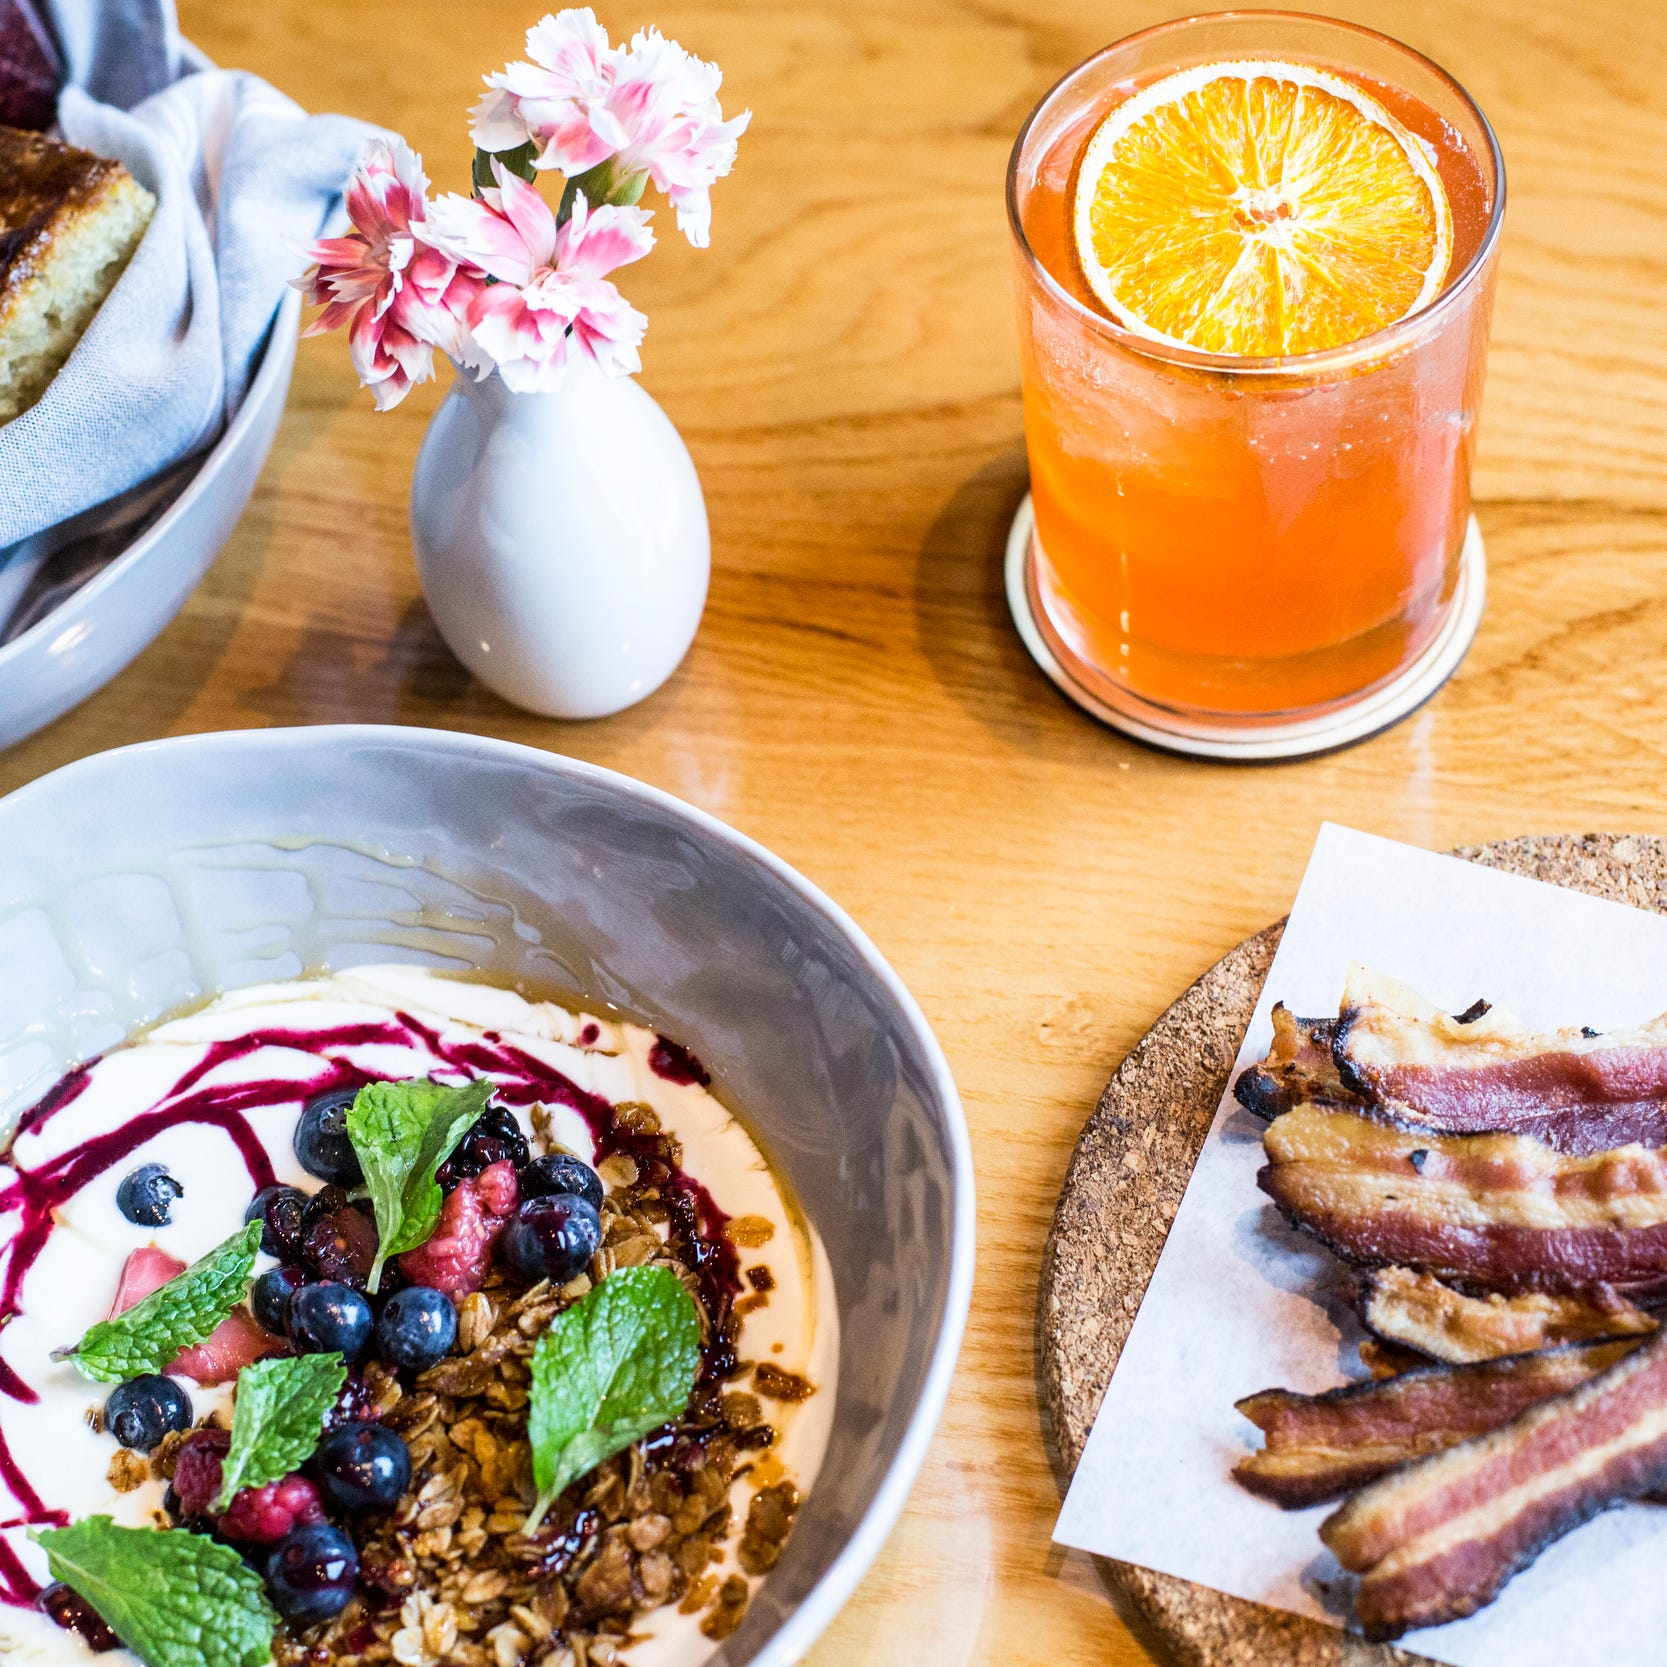 Review: Farm-to-table fare is on the menu for brunch at P.O. Public House and Provisions